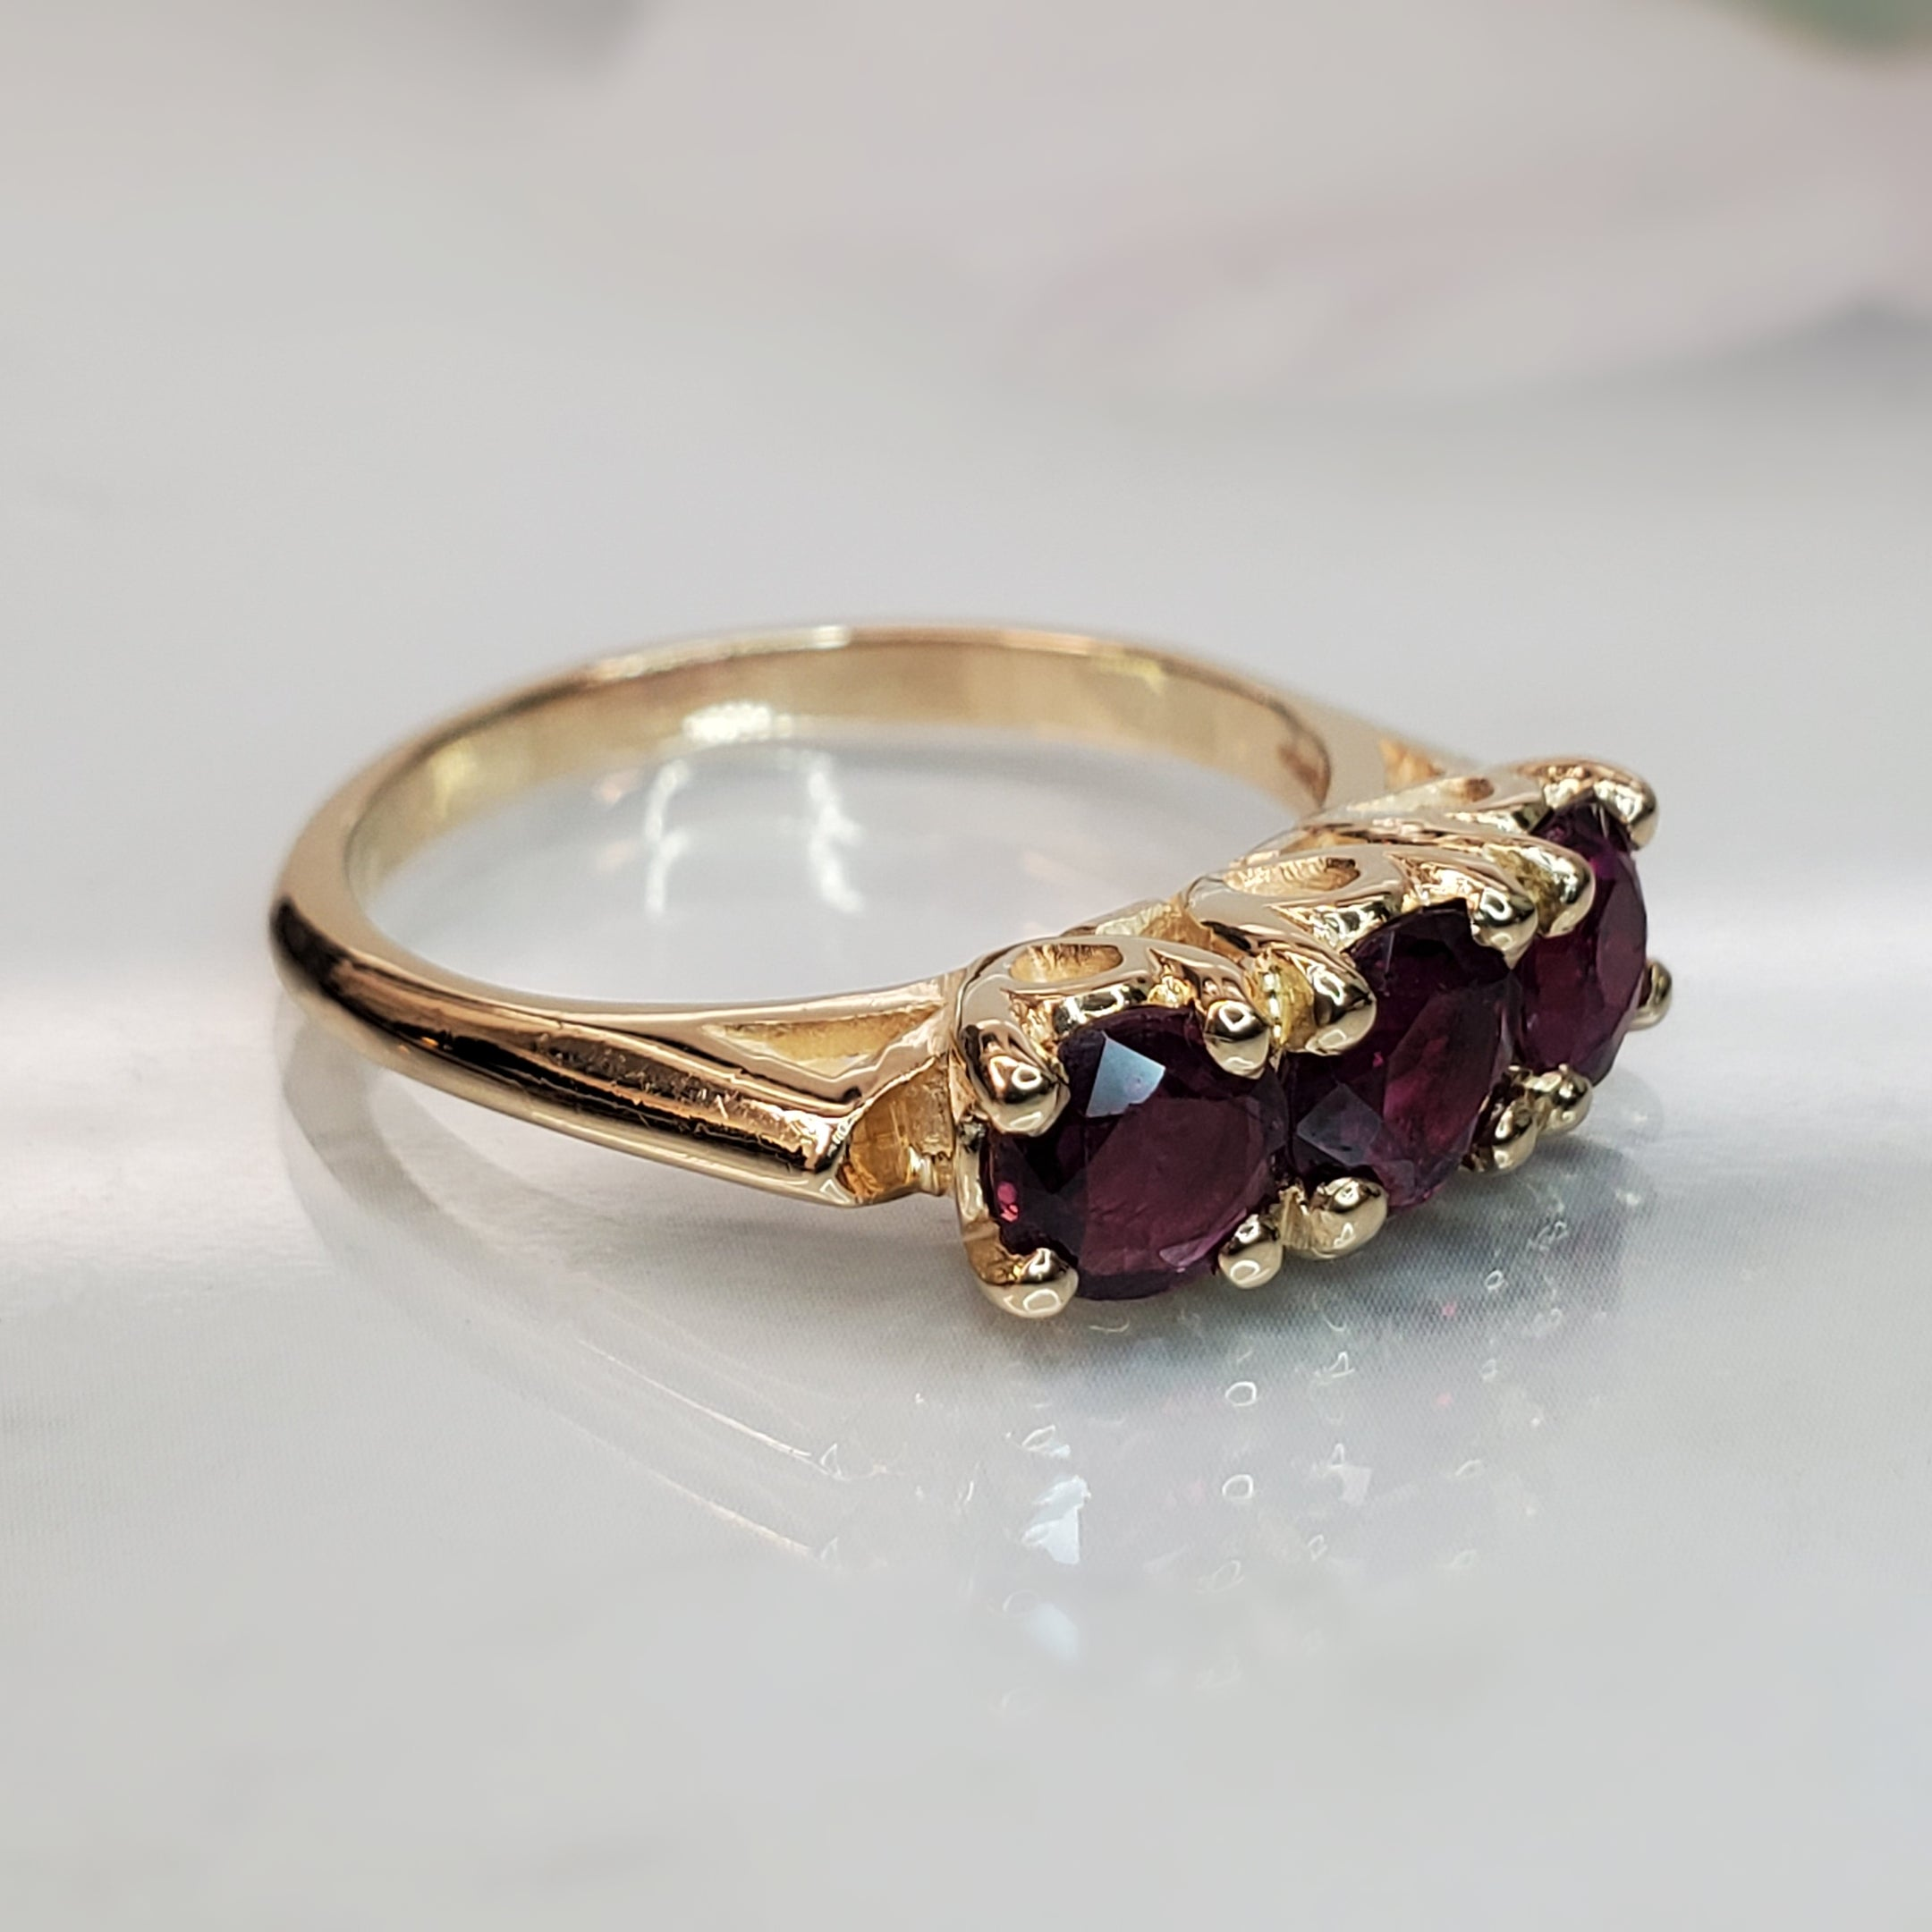 Vintage 14k Yellow Gold 3 Stone Ruby Ring